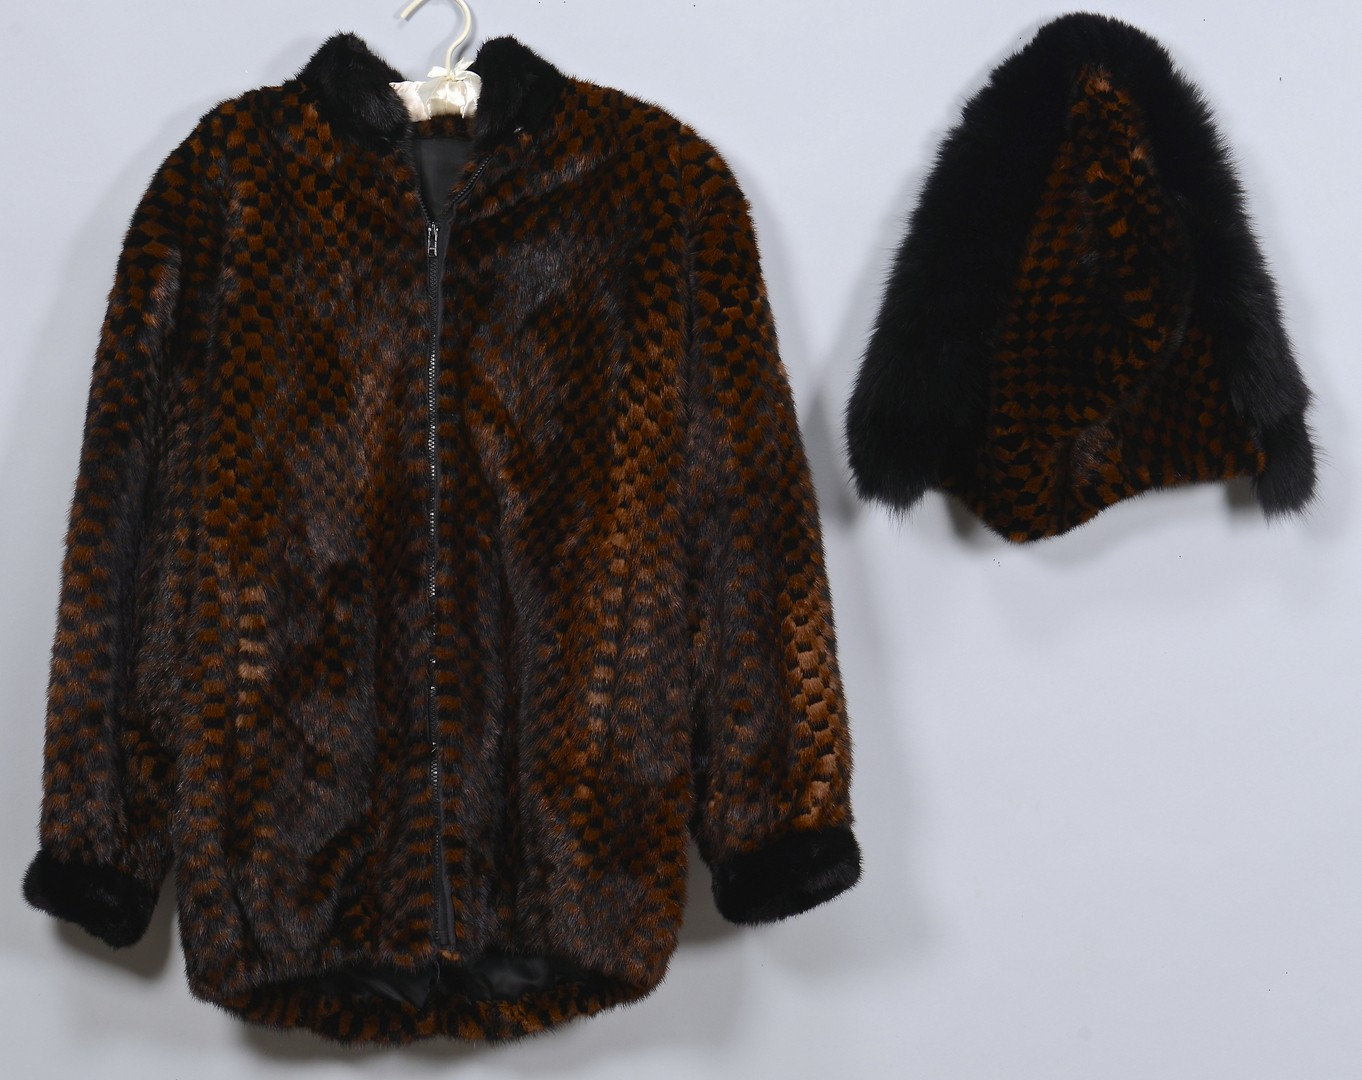 Lot 837: 2 Ladies Fur Coats, 1 Monkey Fur